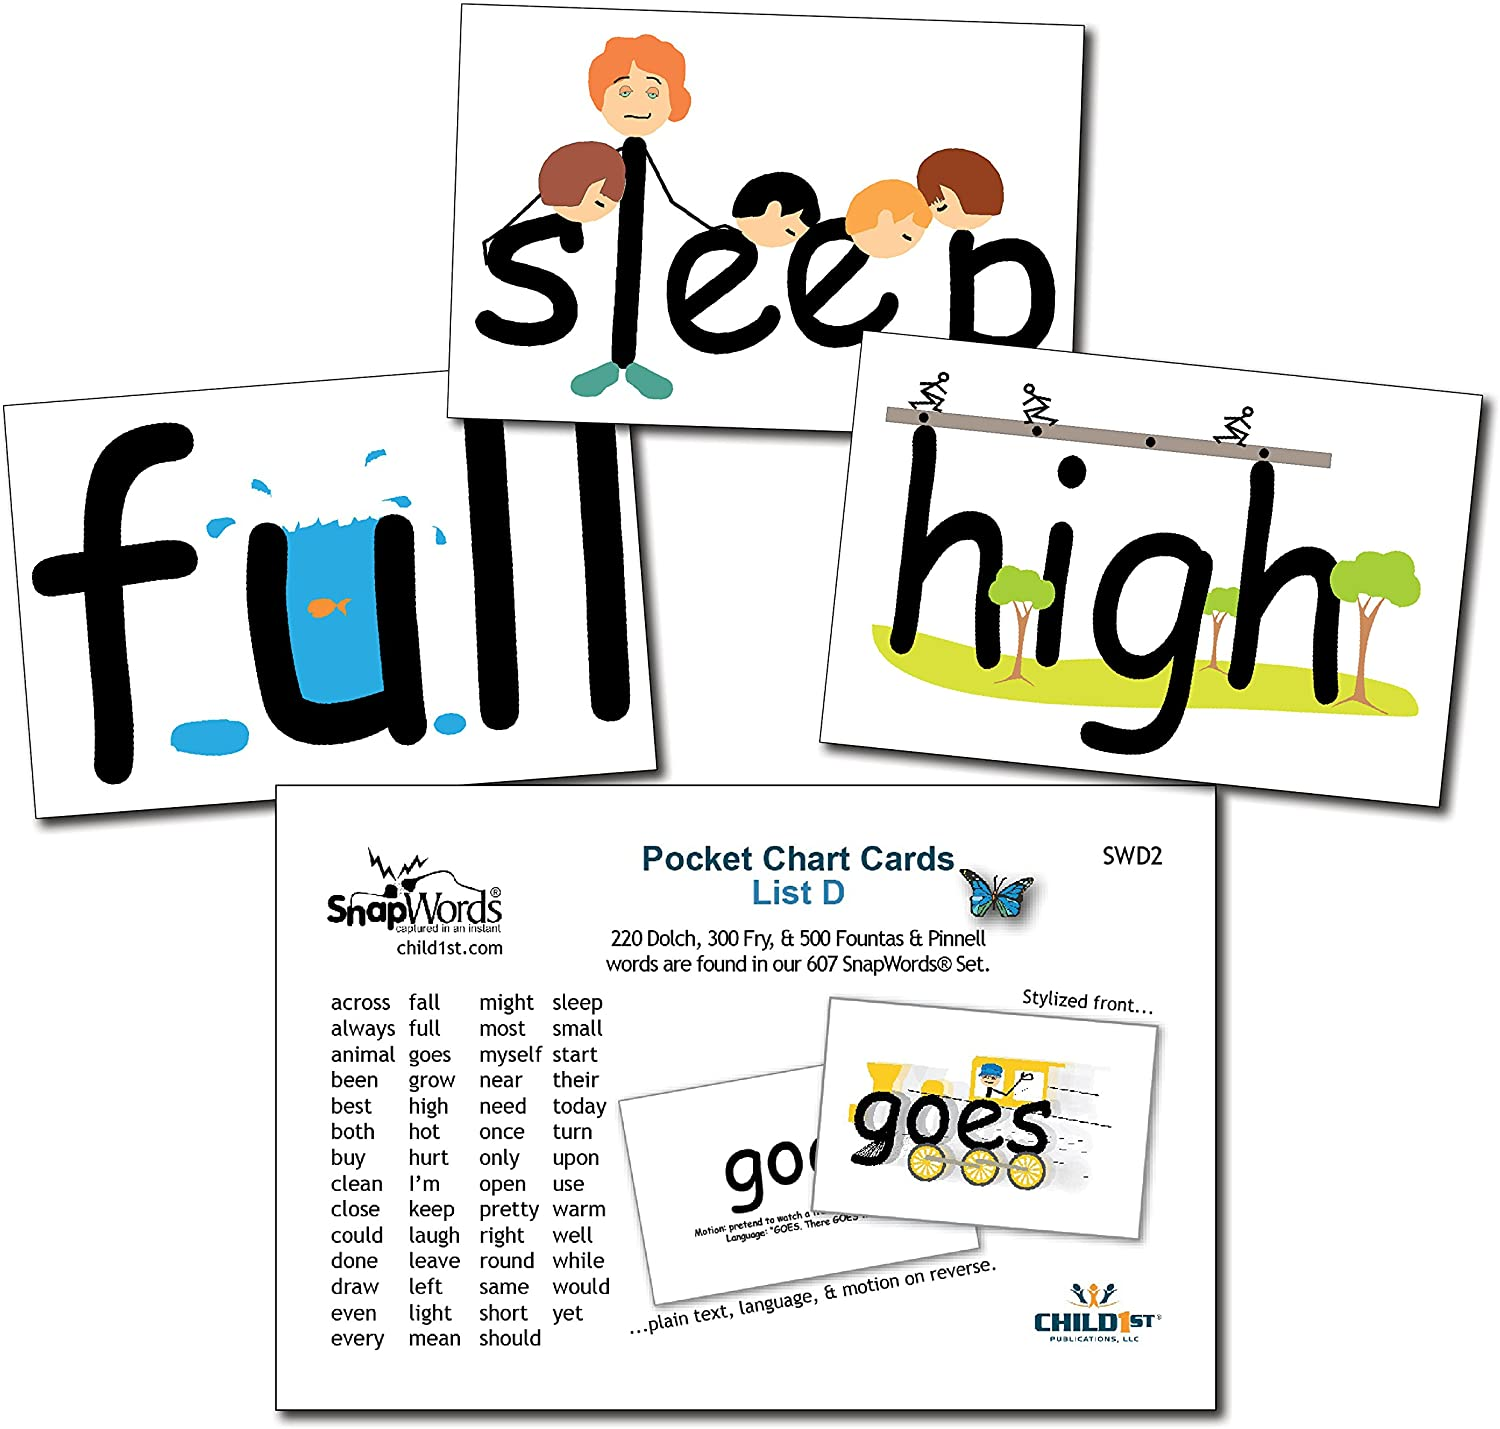 SnapWords List D Pocket Chart Cards - Sight Words